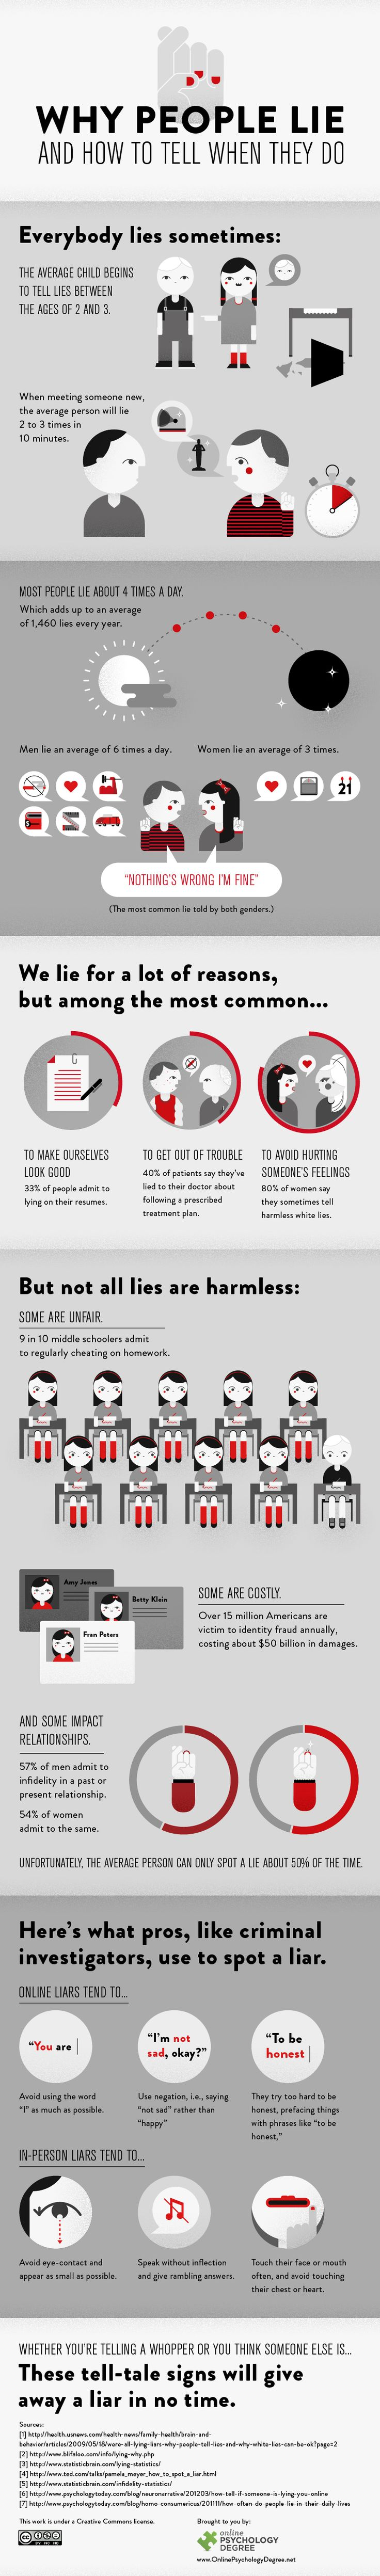 Why People Lie And How To Tell When They Do #infografía #infographic #LifeStyle